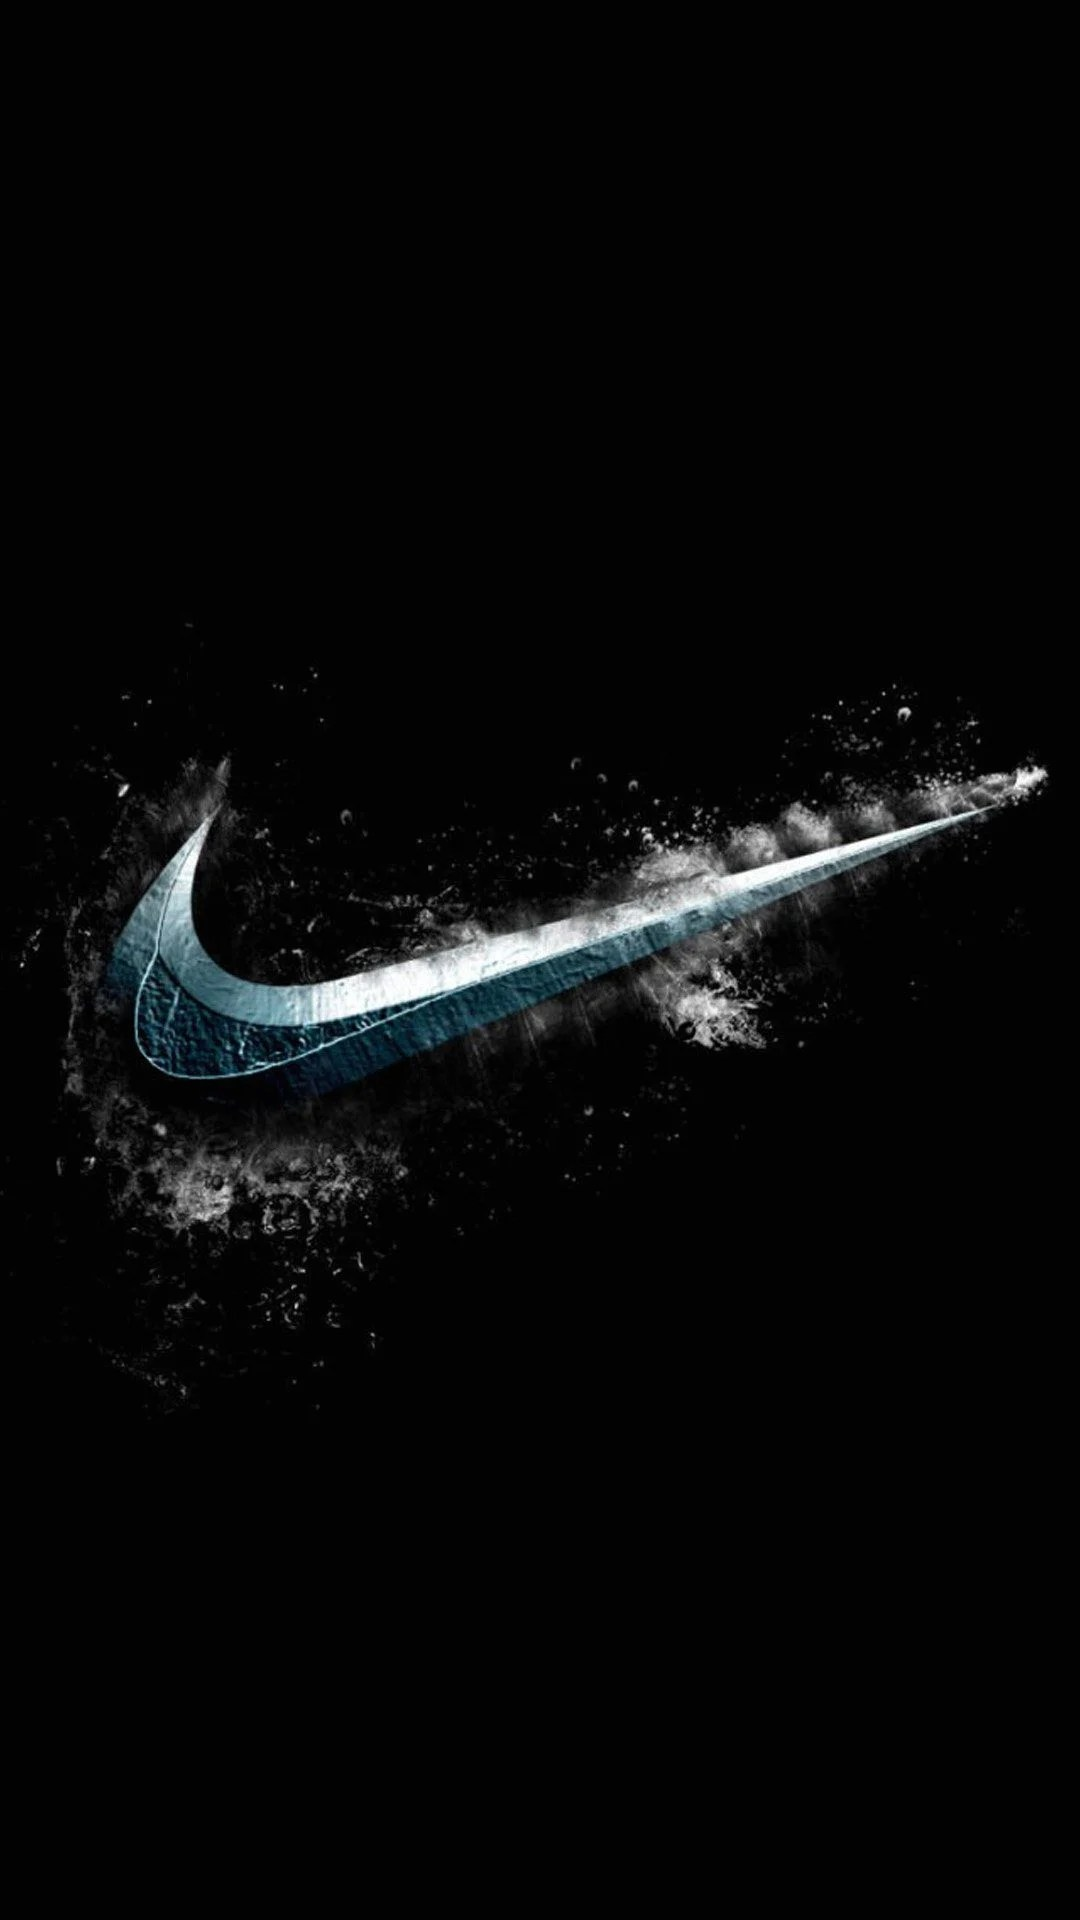 Nike Backgrounds For Phones : backgrounds, phones, Phone, Wallpapers, Backgrounds, WallpaperAccess